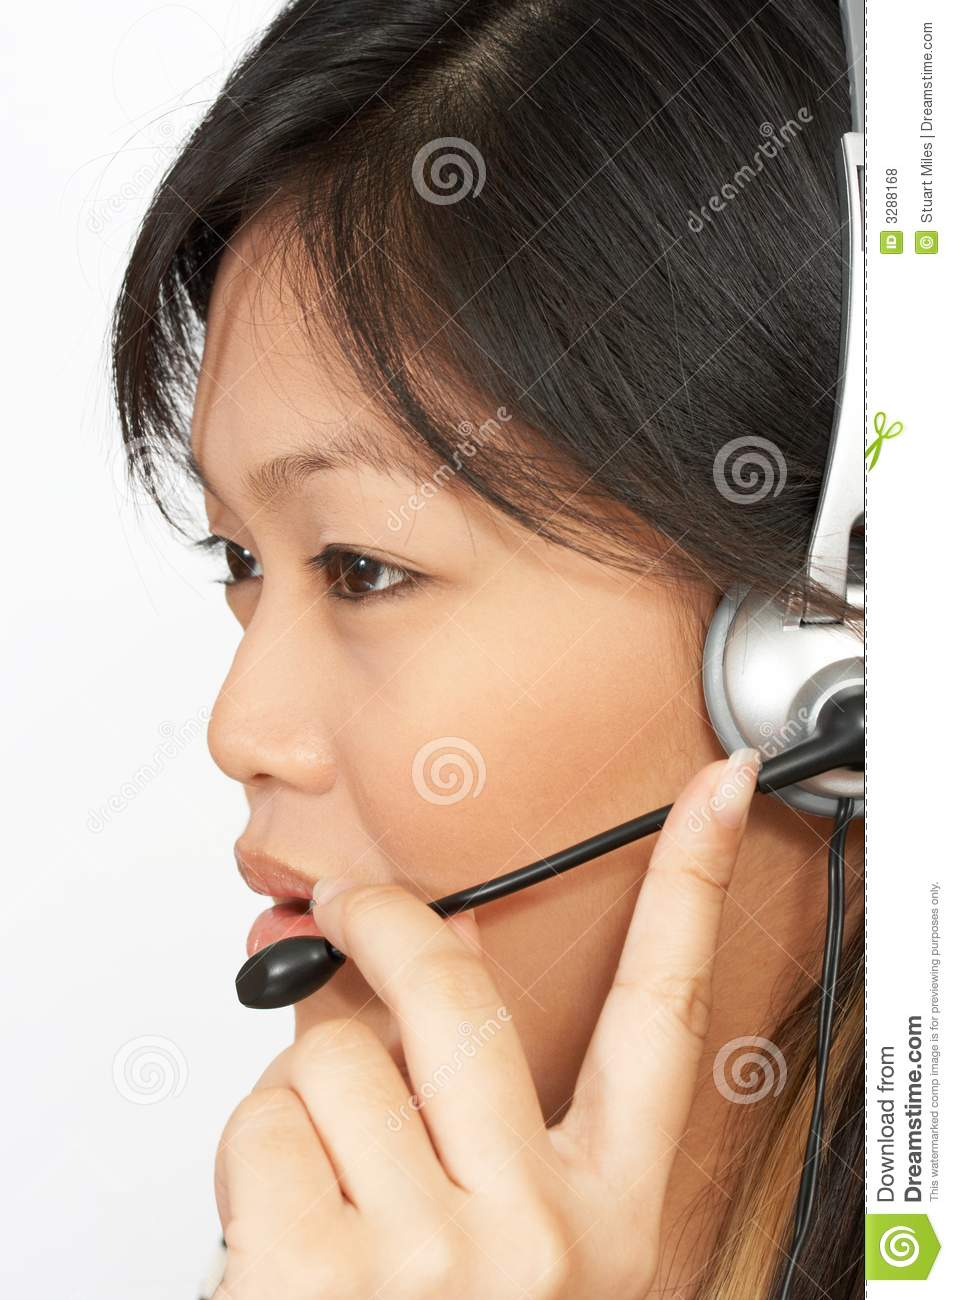 how to become a phone operator